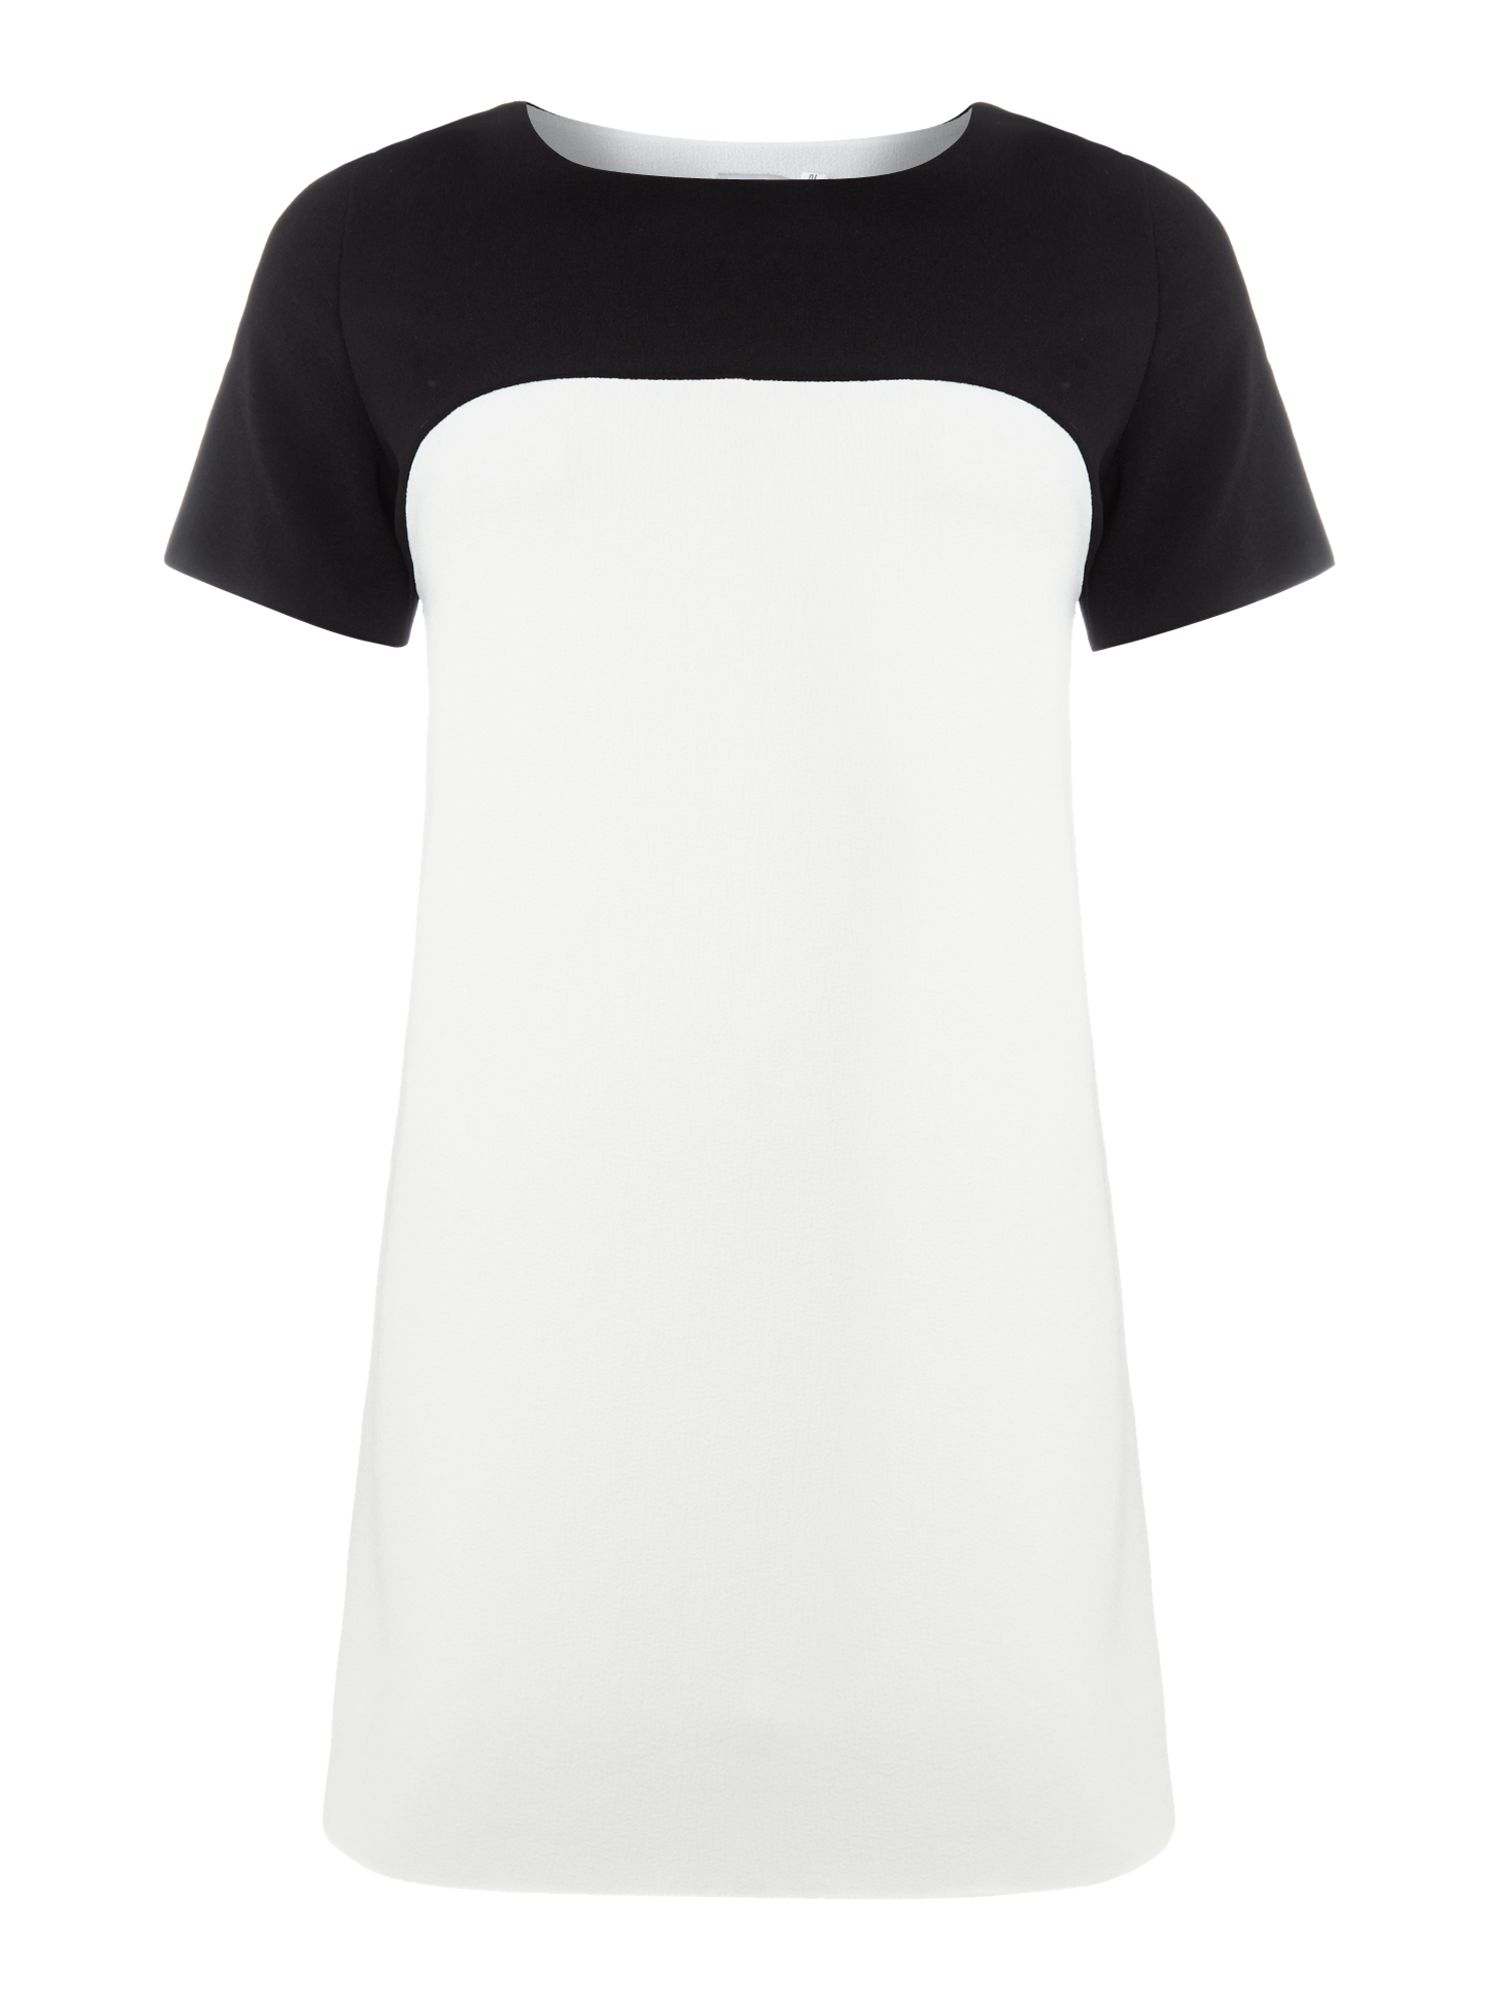 Short sleeved monochrome shift dress